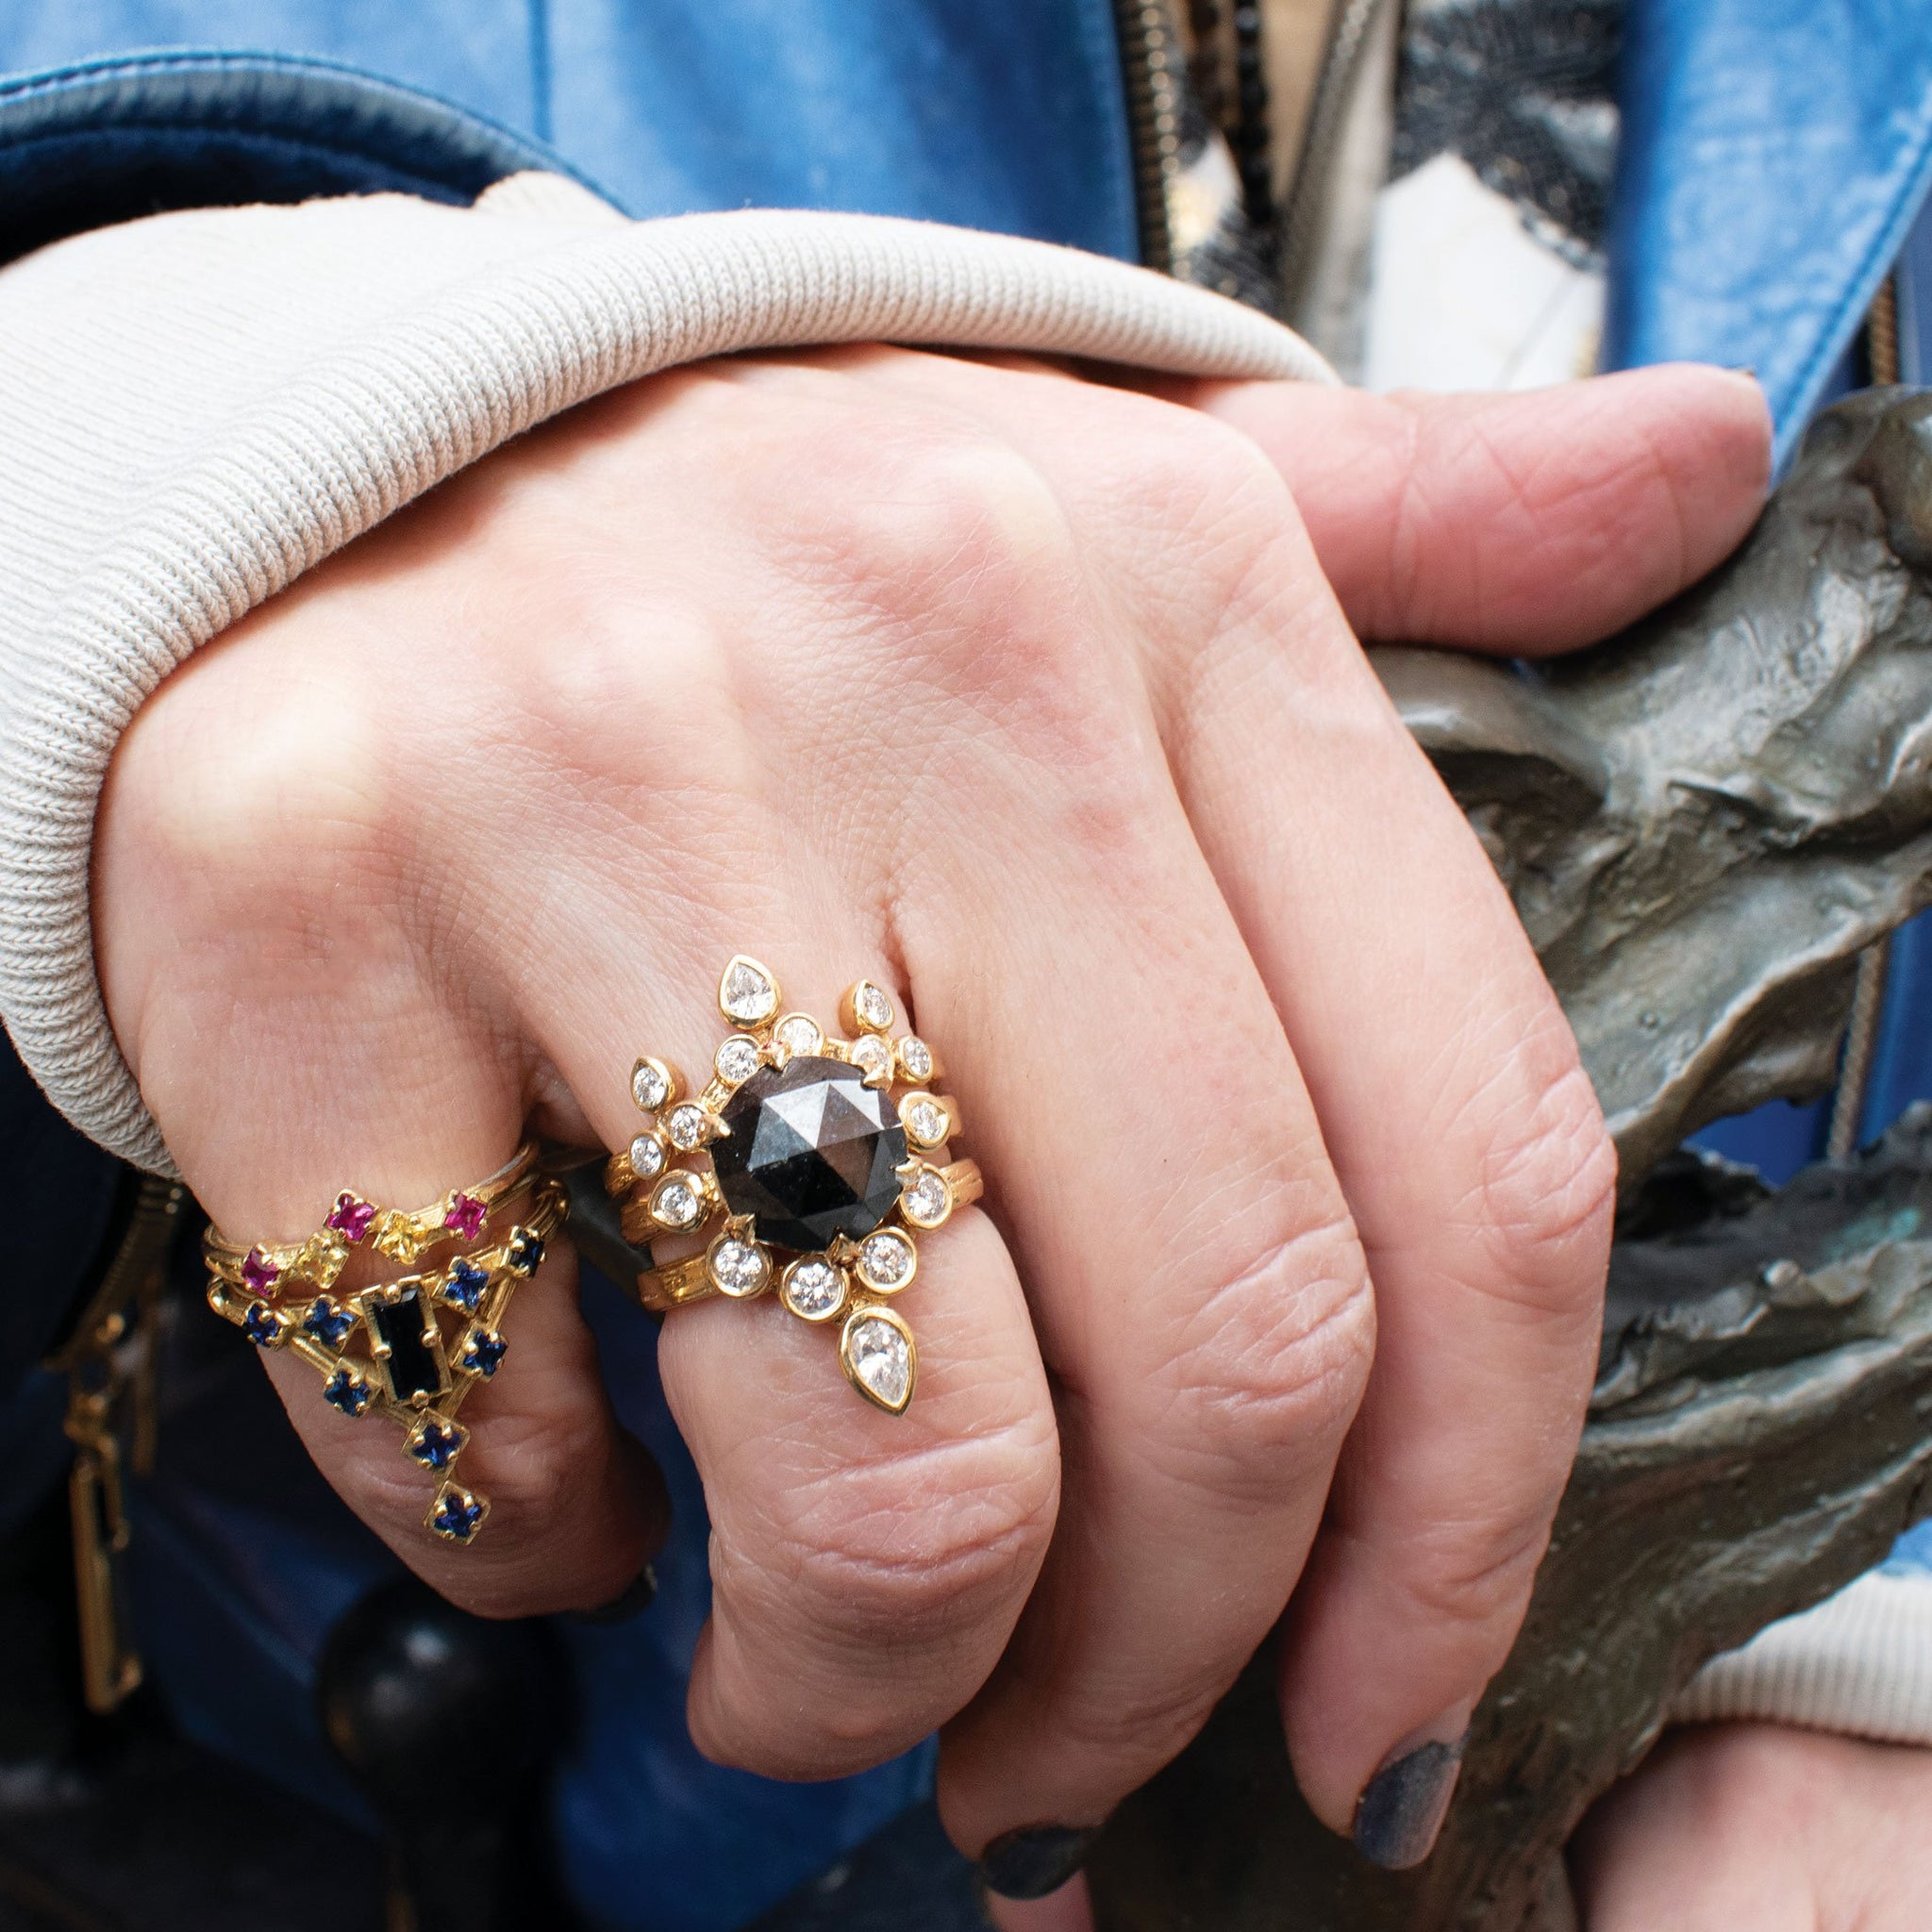 INVINCIBLE CROWN W/ TURNED OUT BELGIAN & INVINCIBLE TIARA, Ring - Made local in New York City by the best alternative jewelry store. Shop more Karen Karch & Karch Wolfe at www.karenkarch.com or visit us at 38 Gramercy Park N.